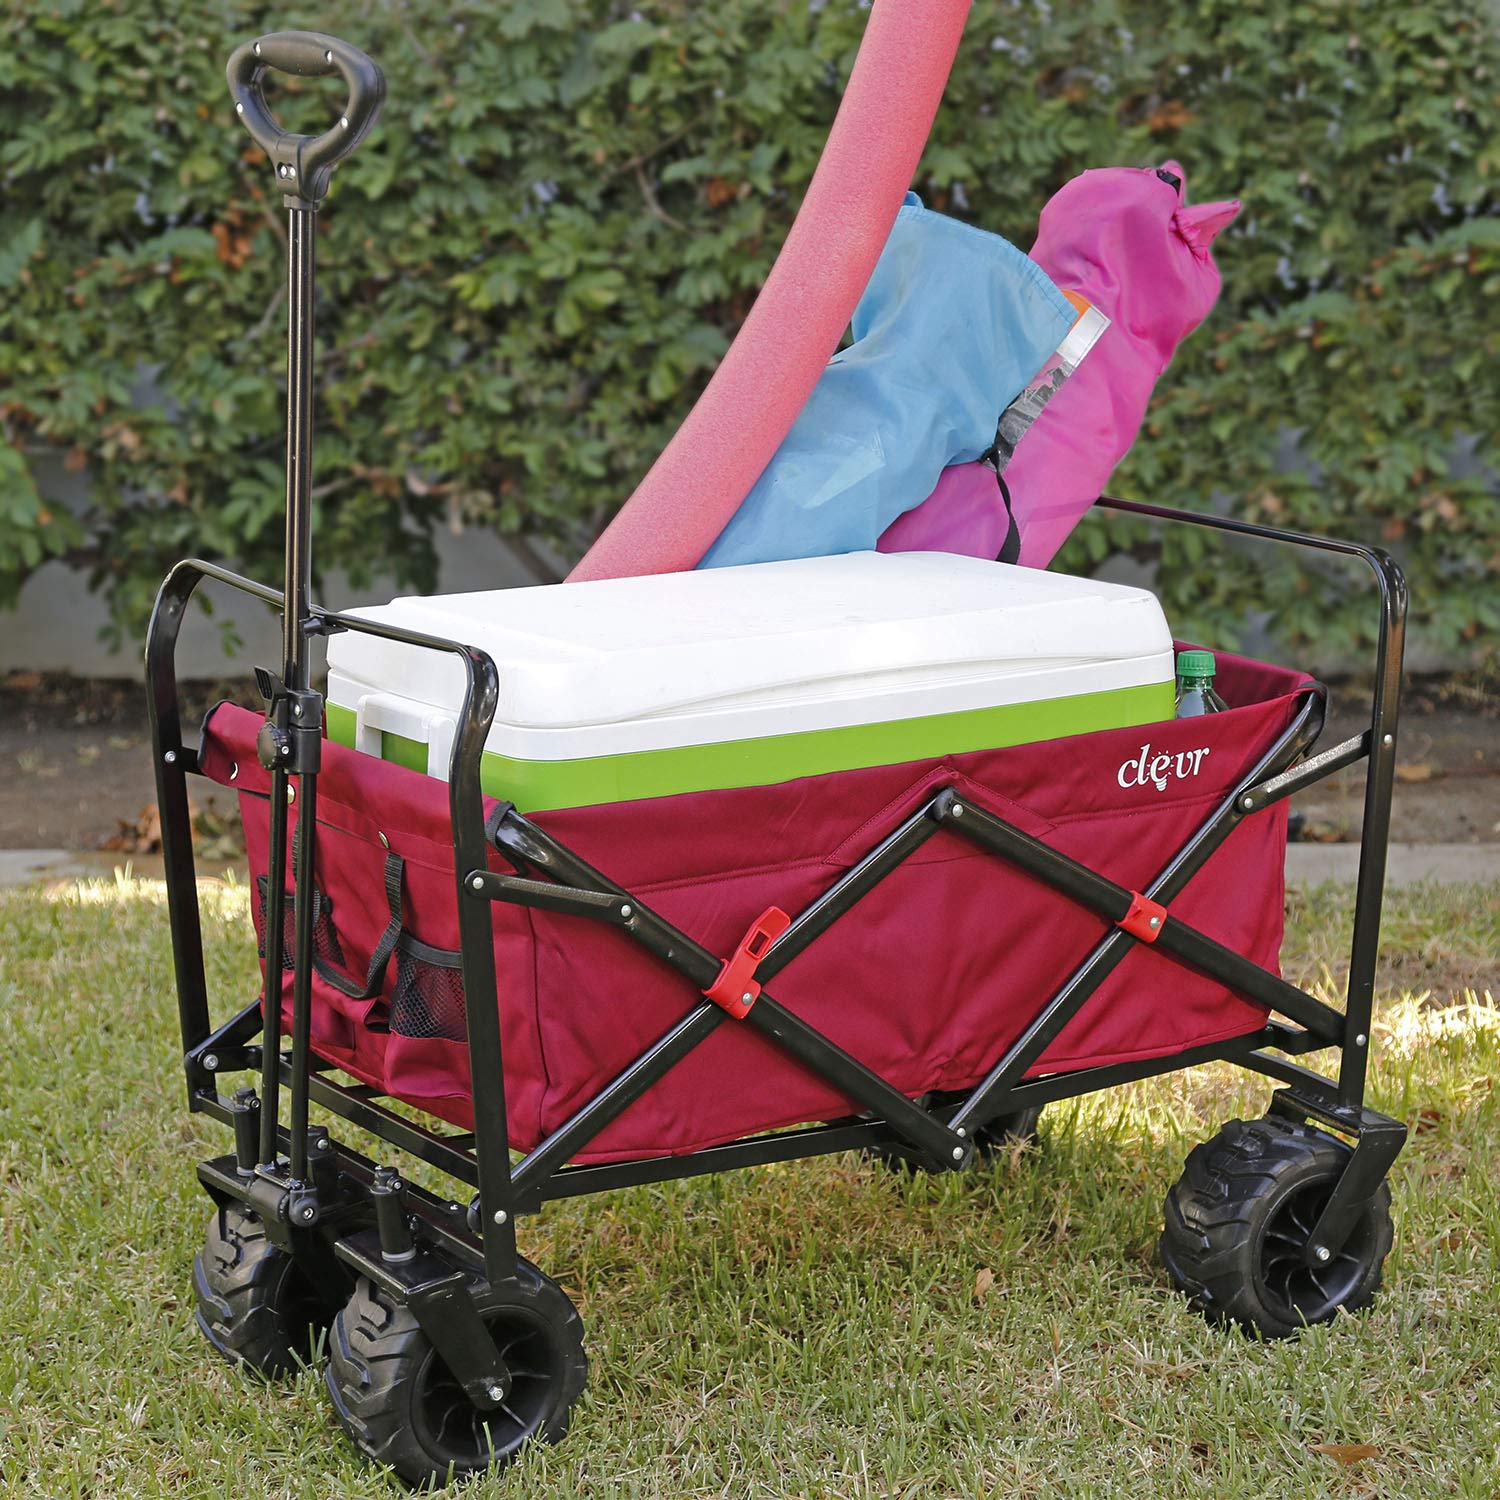 Clevr Collapsible Foldable Outdoor Wagon Cart with Large All Terrain Wheels, Red 265 Lb Capacity, Easy Folding Utility Garden Transport Trolley, Great for Parties, Shopping, Beach, Park, Sports by Clevr